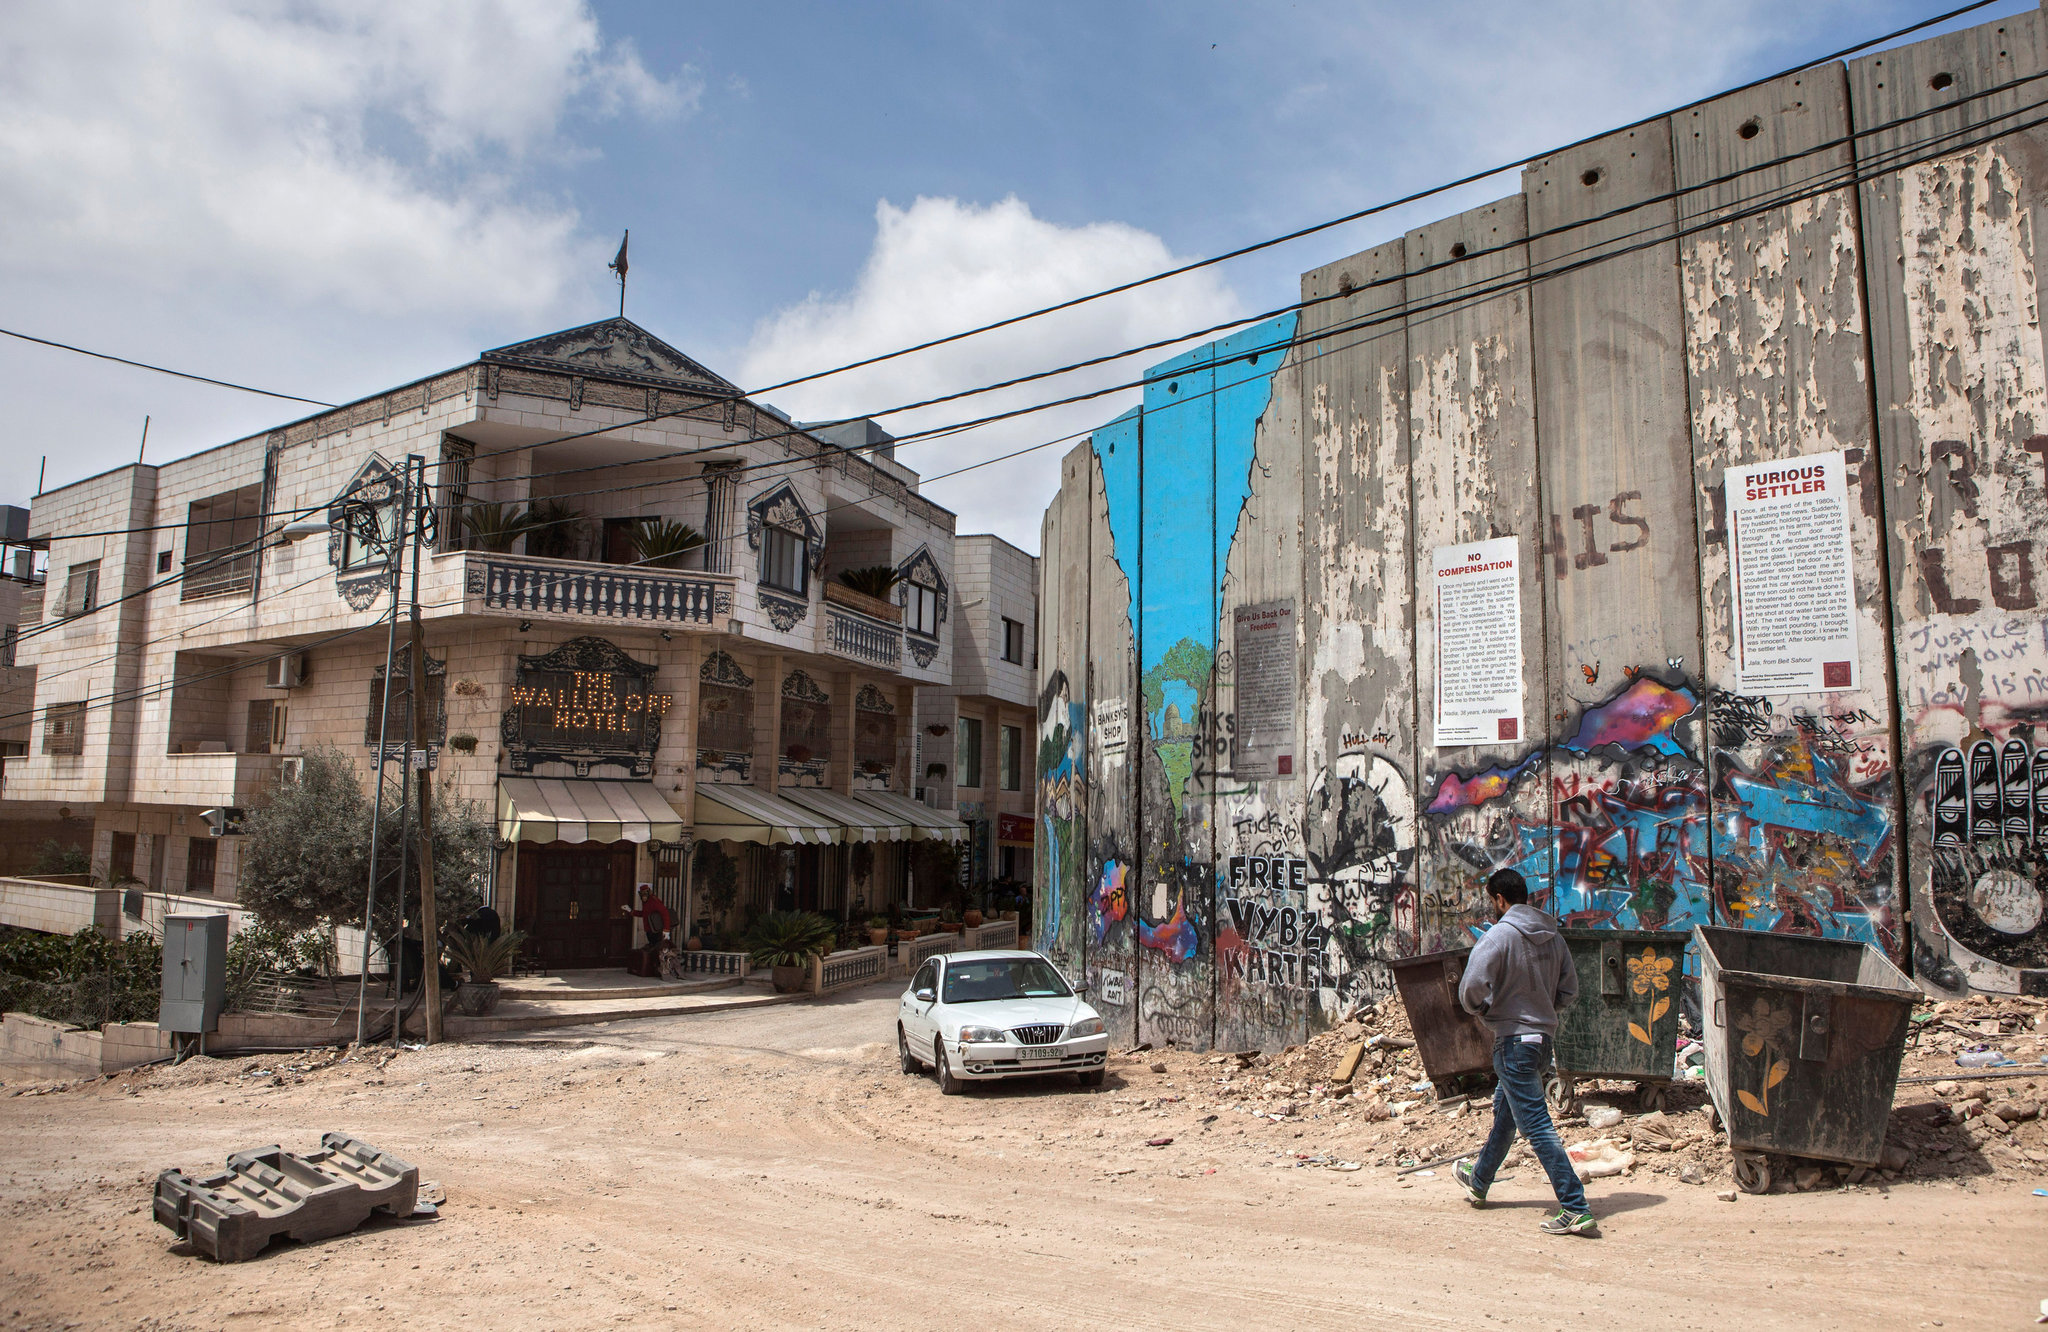 Banksy Hotel In The West Bank Small But Plenty Of Wall